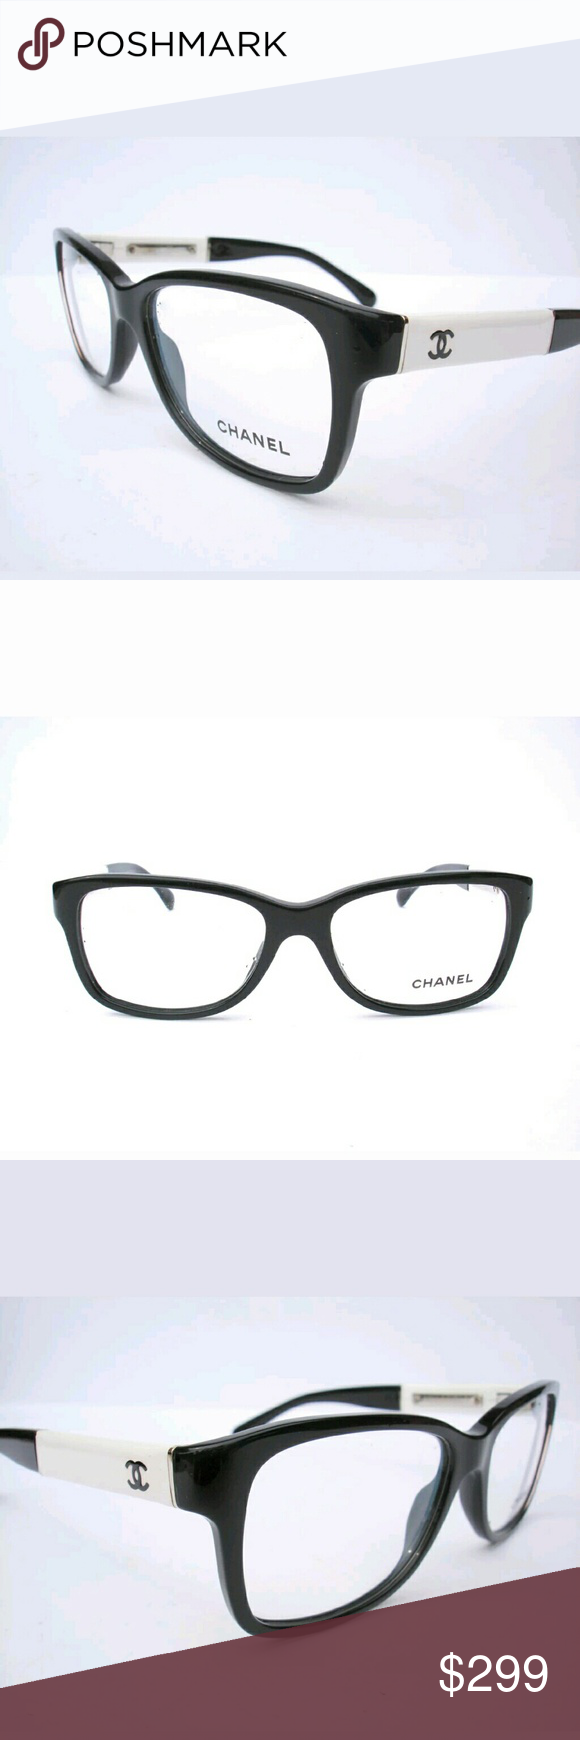 bd87457f452d Chanel Eyeglasses New and authentic Chanel Eyeglasses Black frame Size 54mm  Includes original case only Chanel Accessories Glasses